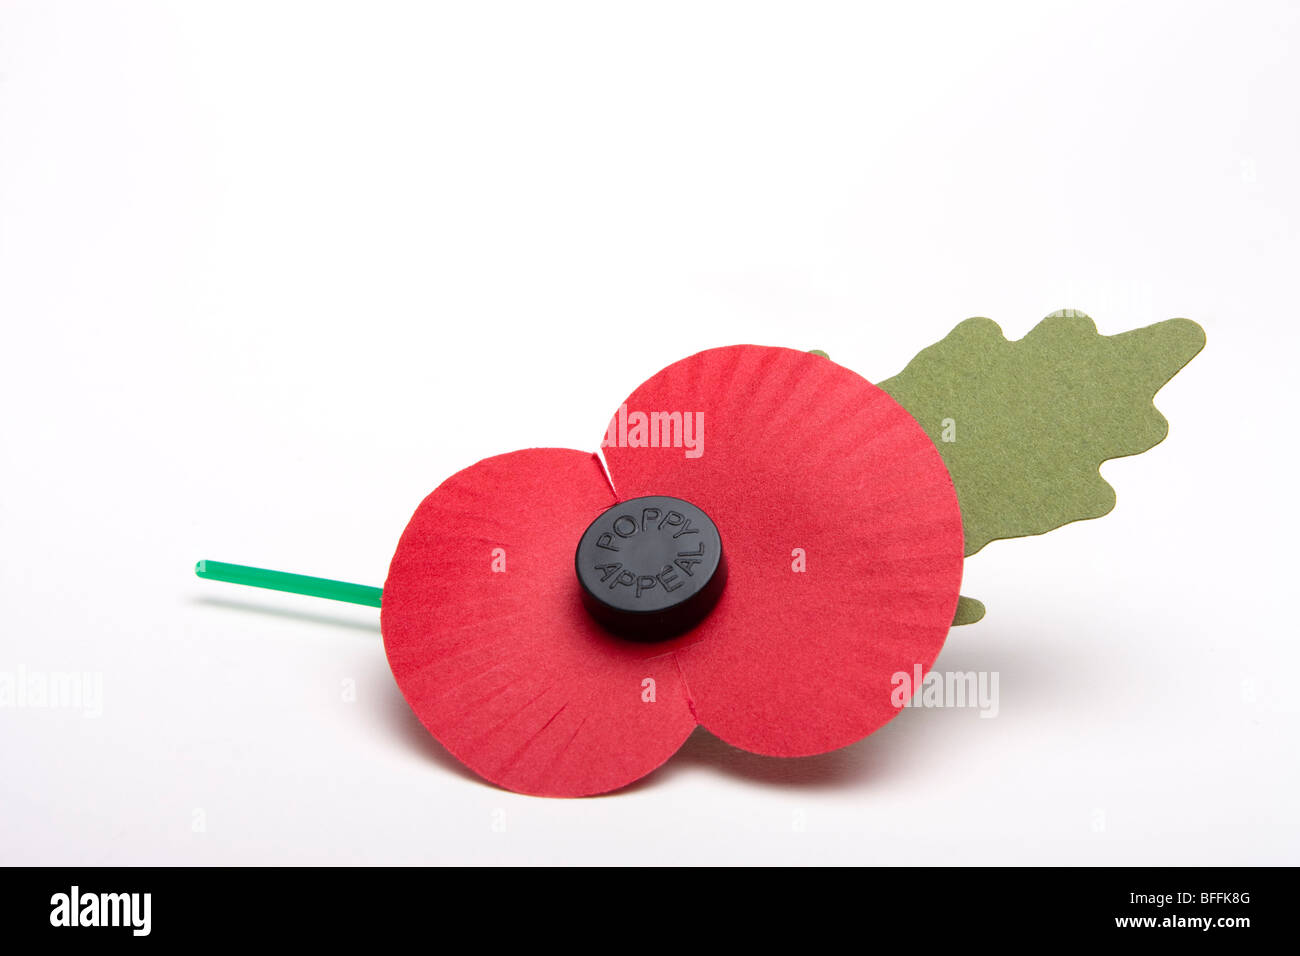 Single artificial poppy day appeal poppy isolated against white background. - Stock Image